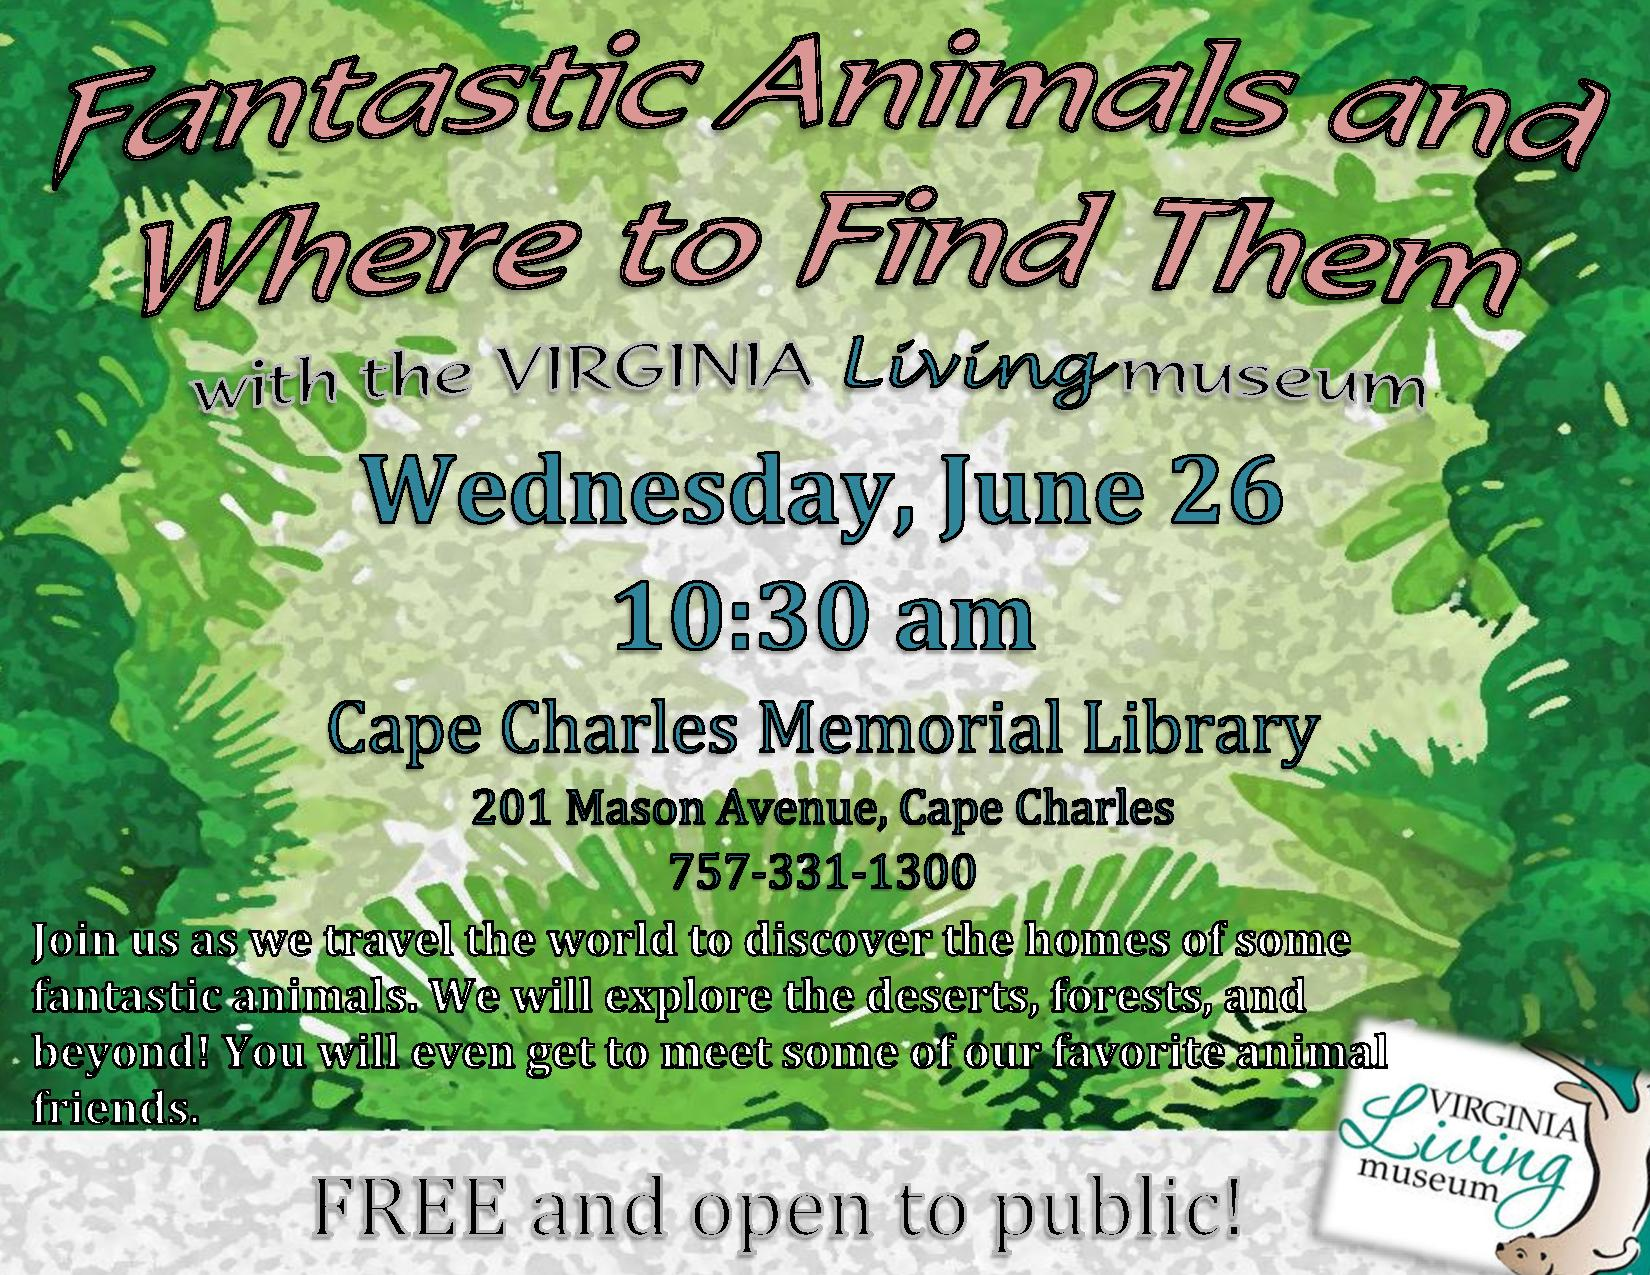 Fantastic Animals and Where to Find Them with Virginia Living Museum @ Cape Charles Memorial Library